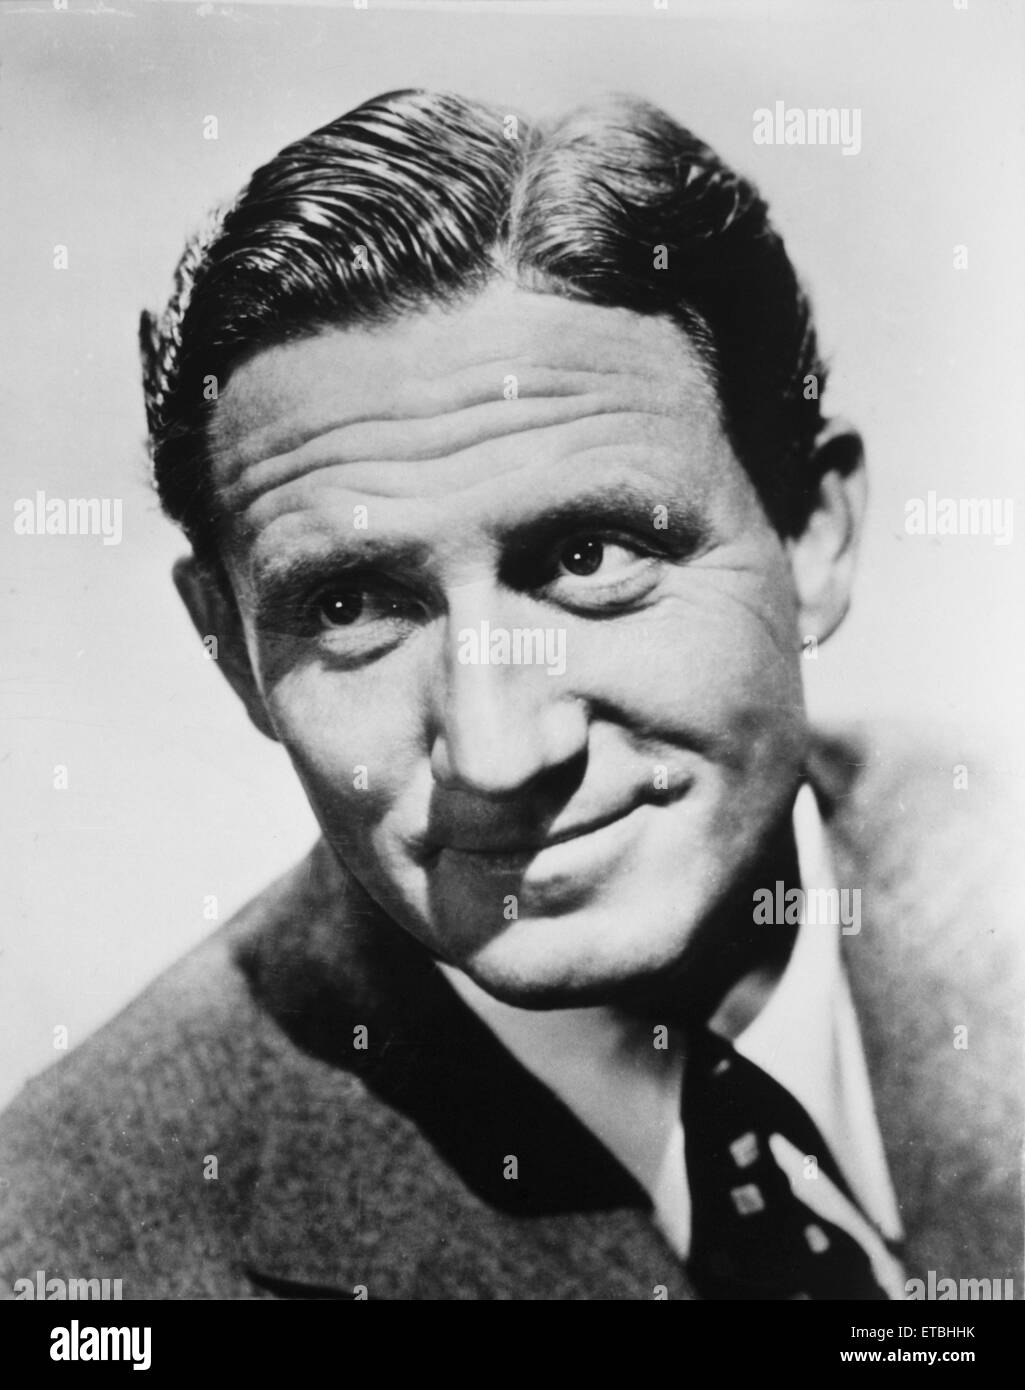 Actor Spencer Tracy, Publicity Portrait, circa 1940 Stock Photo